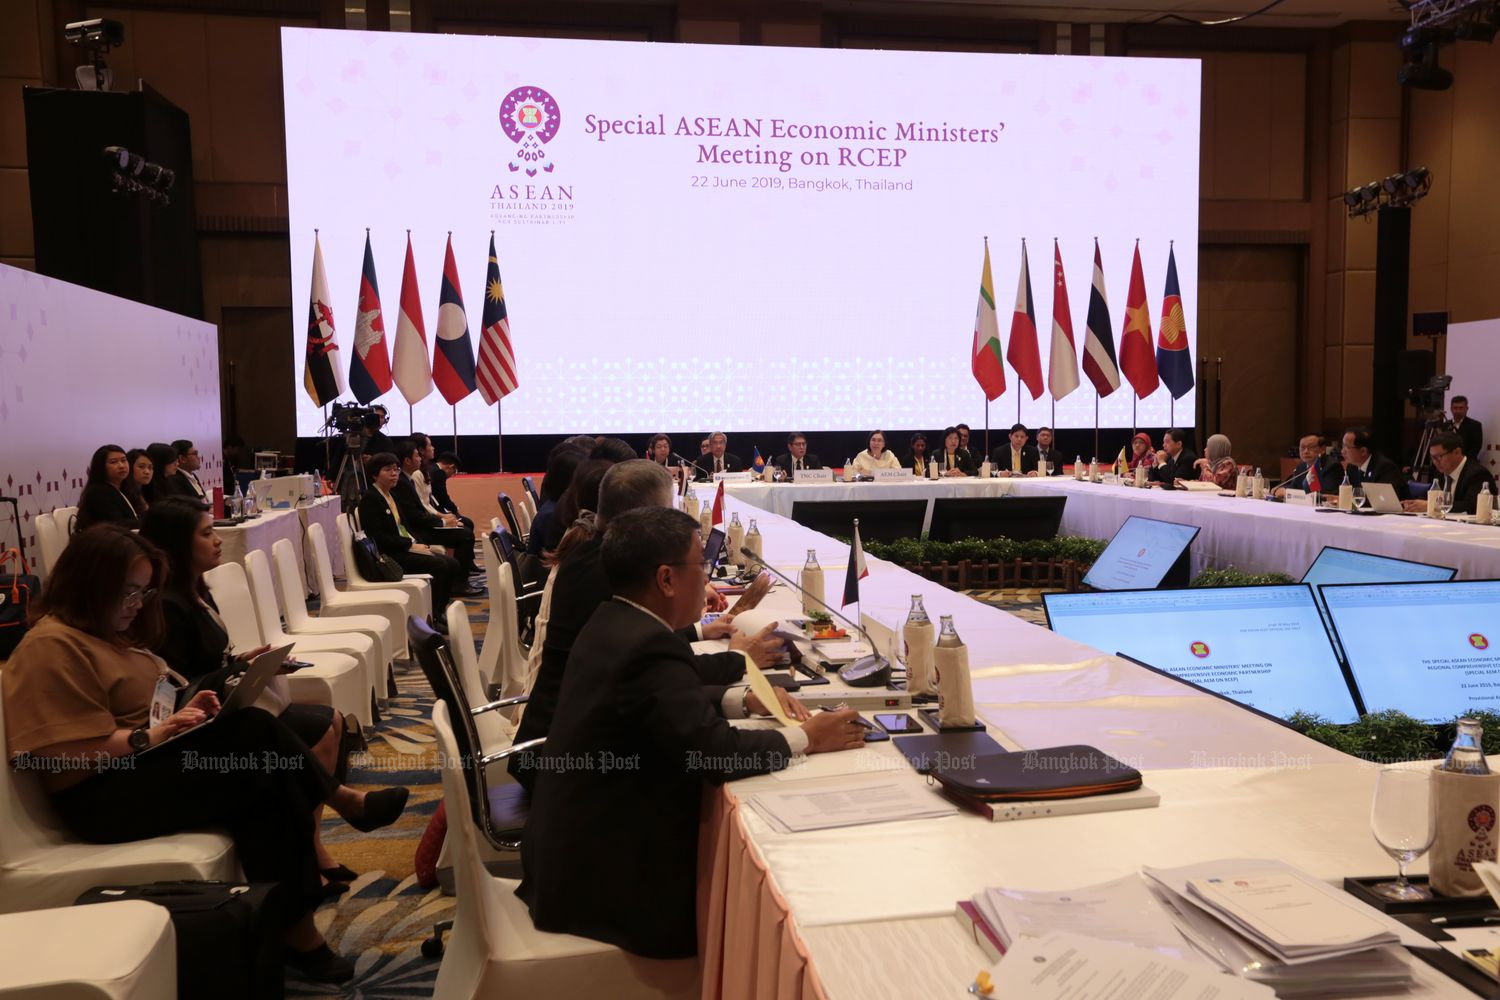 Asean economic ministers meet in Bangkok to discuss the RCEP deal in late June. (Photo by Chanat Katanyu)